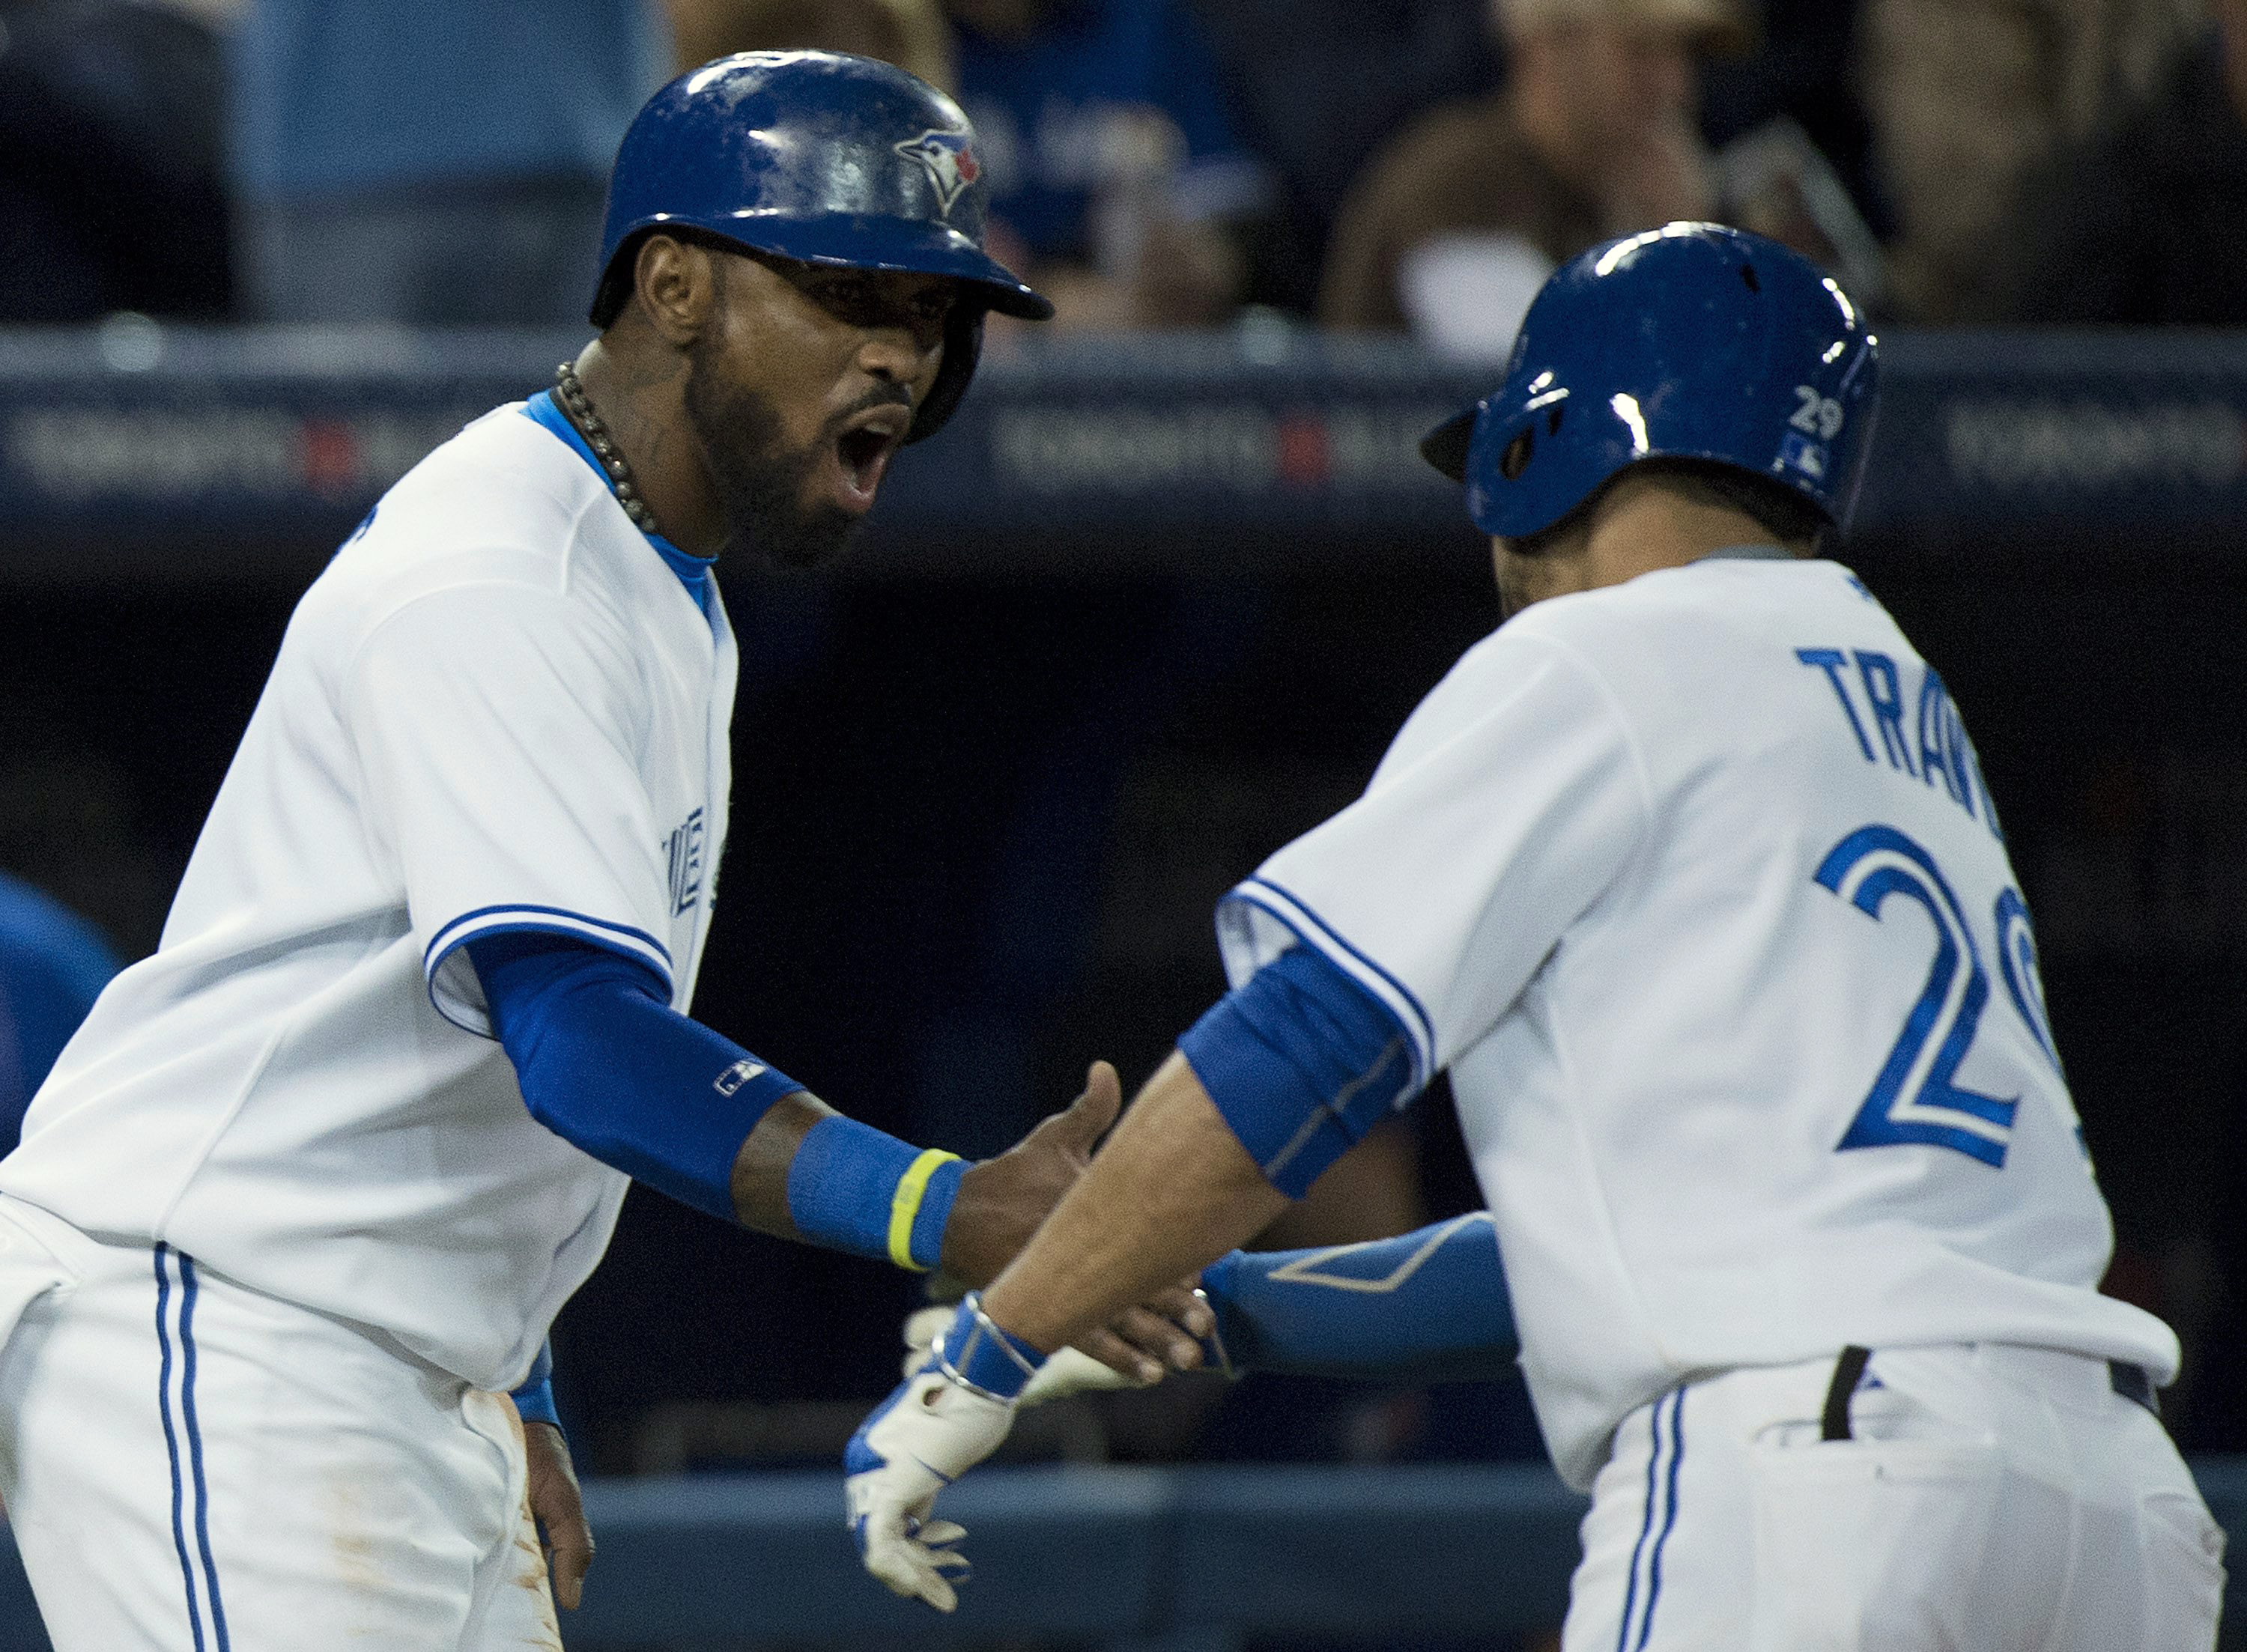 Toronto Blue Jays second baseman Devon Travis, right, celebrates his two run home run with teammate Jose Reyes while play against the Baltimore Orioles during fifth inning baseball action in Toronto on Wednesday, April 22, 2015. (Nathan Denette/The Canadi